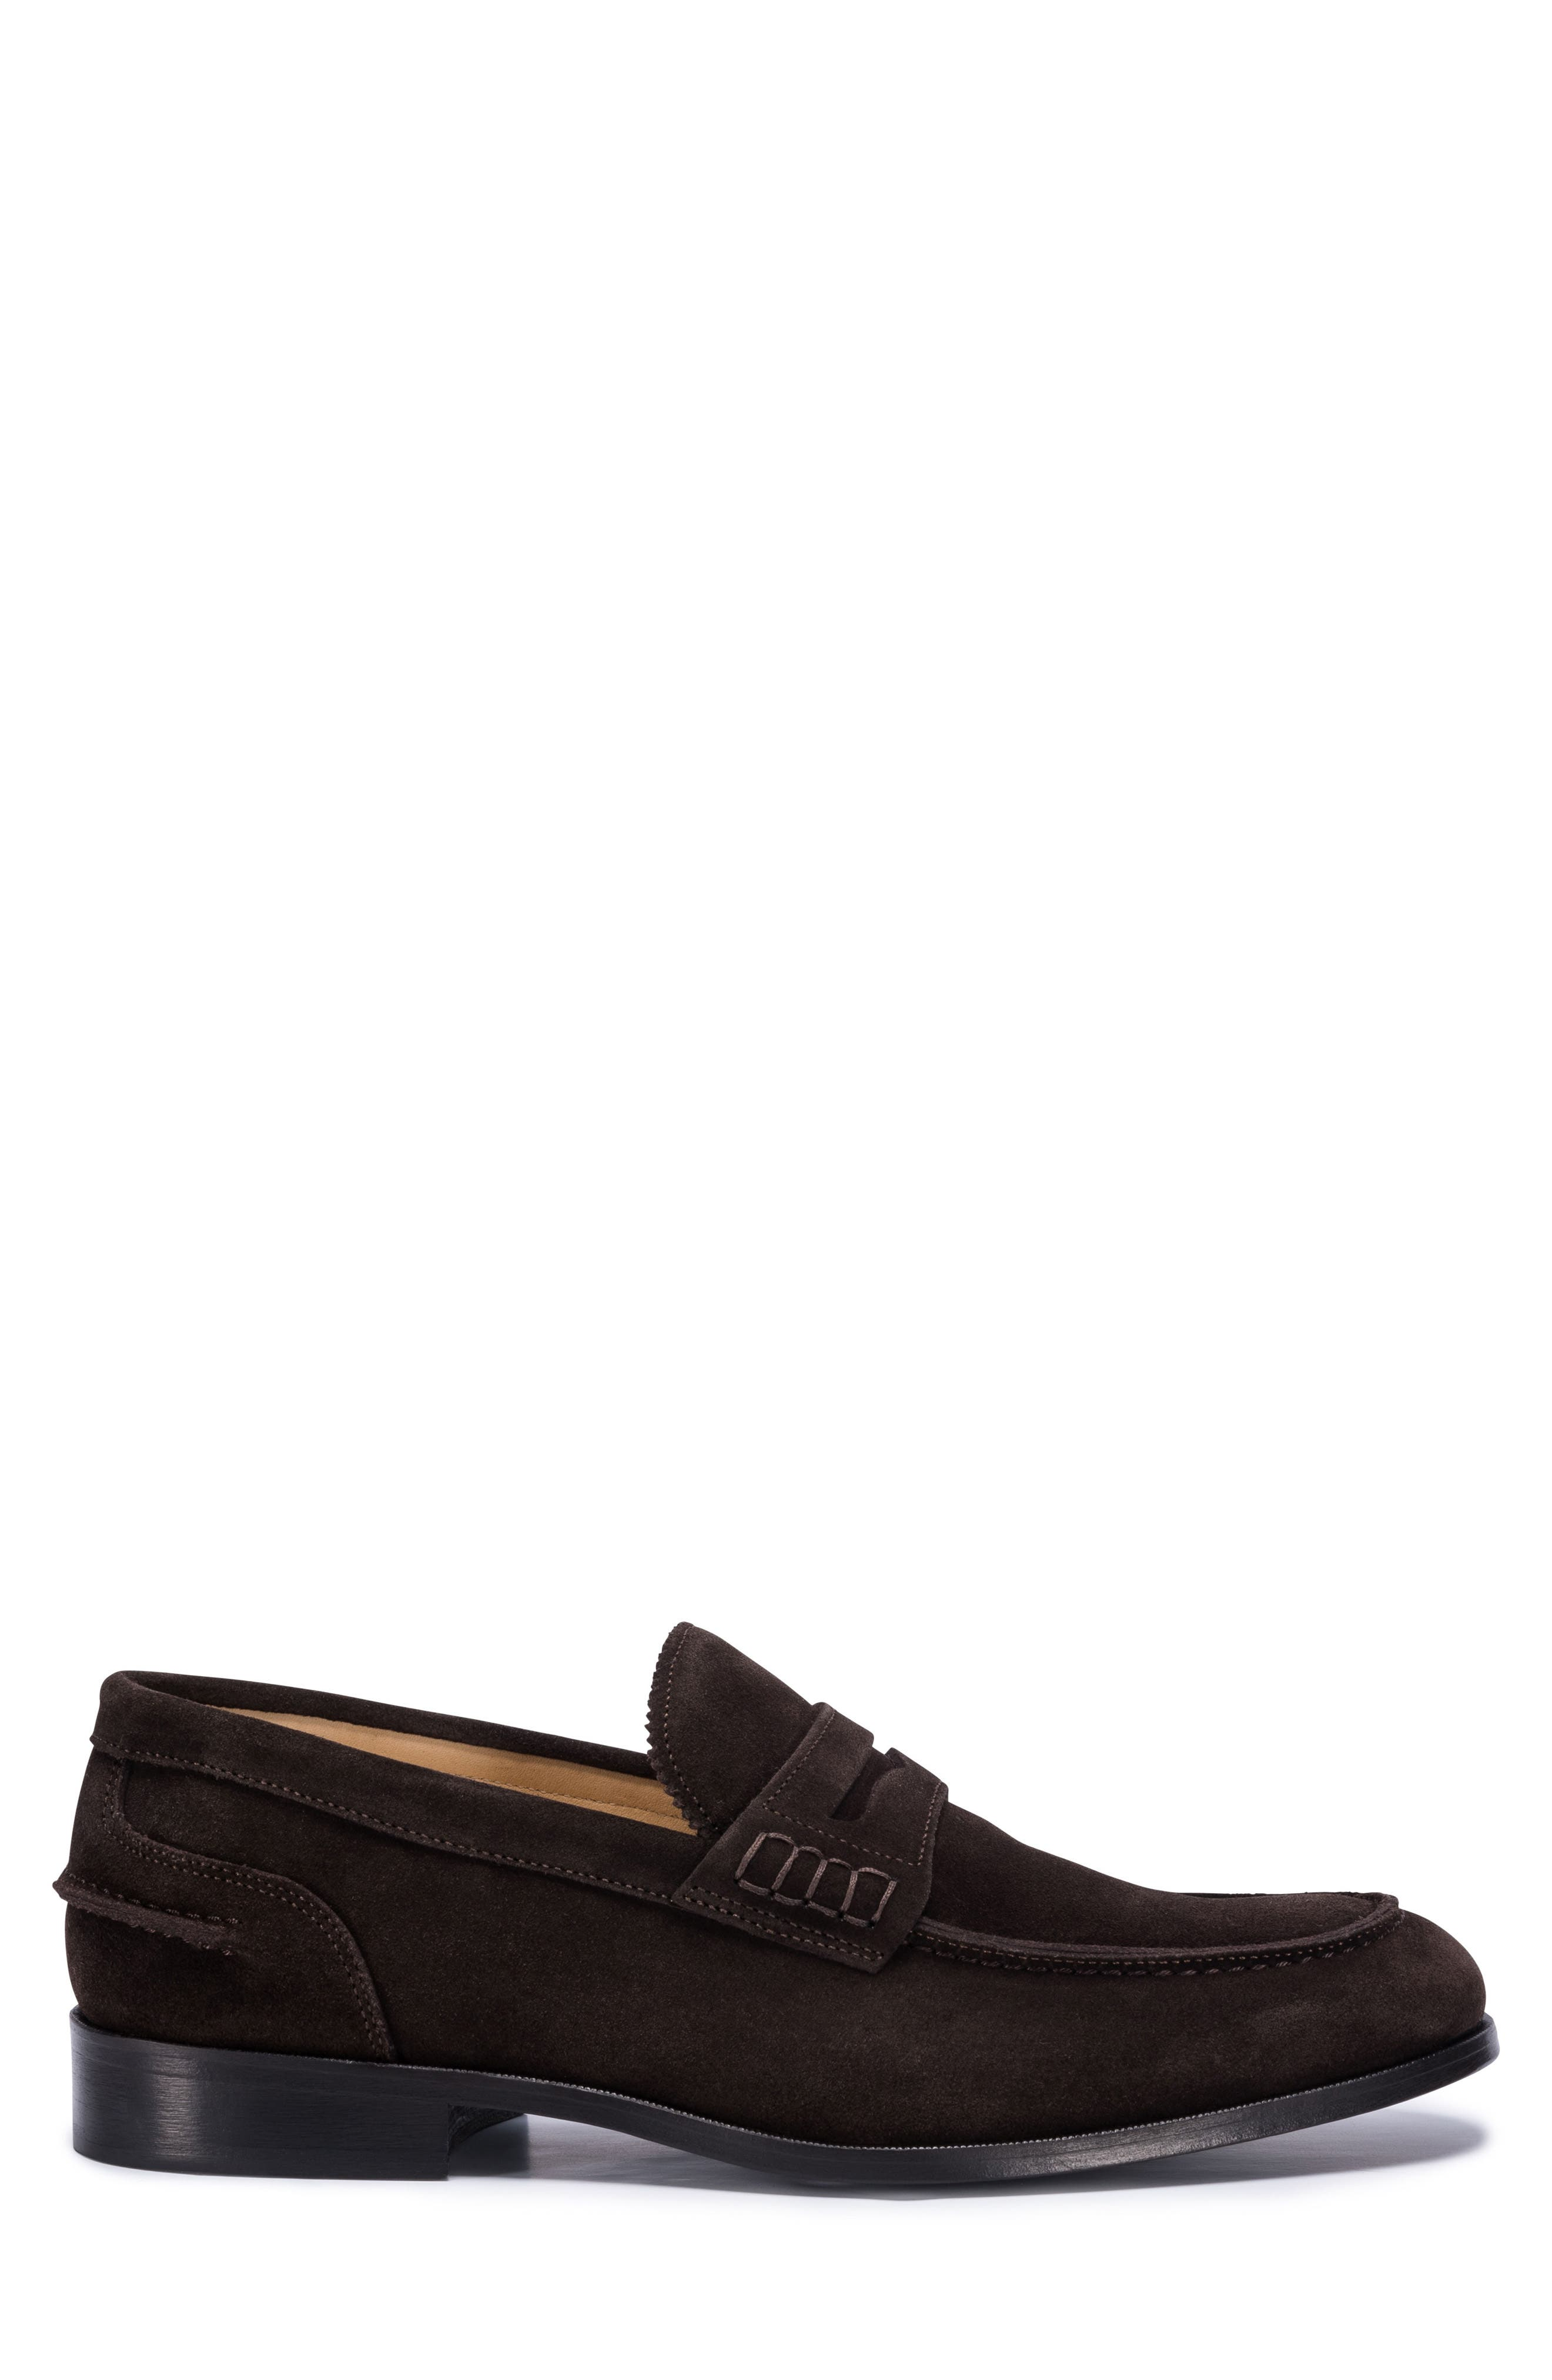 Torino Penny Loafer,                             Alternate thumbnail 3, color,                             BROWN SUEDE